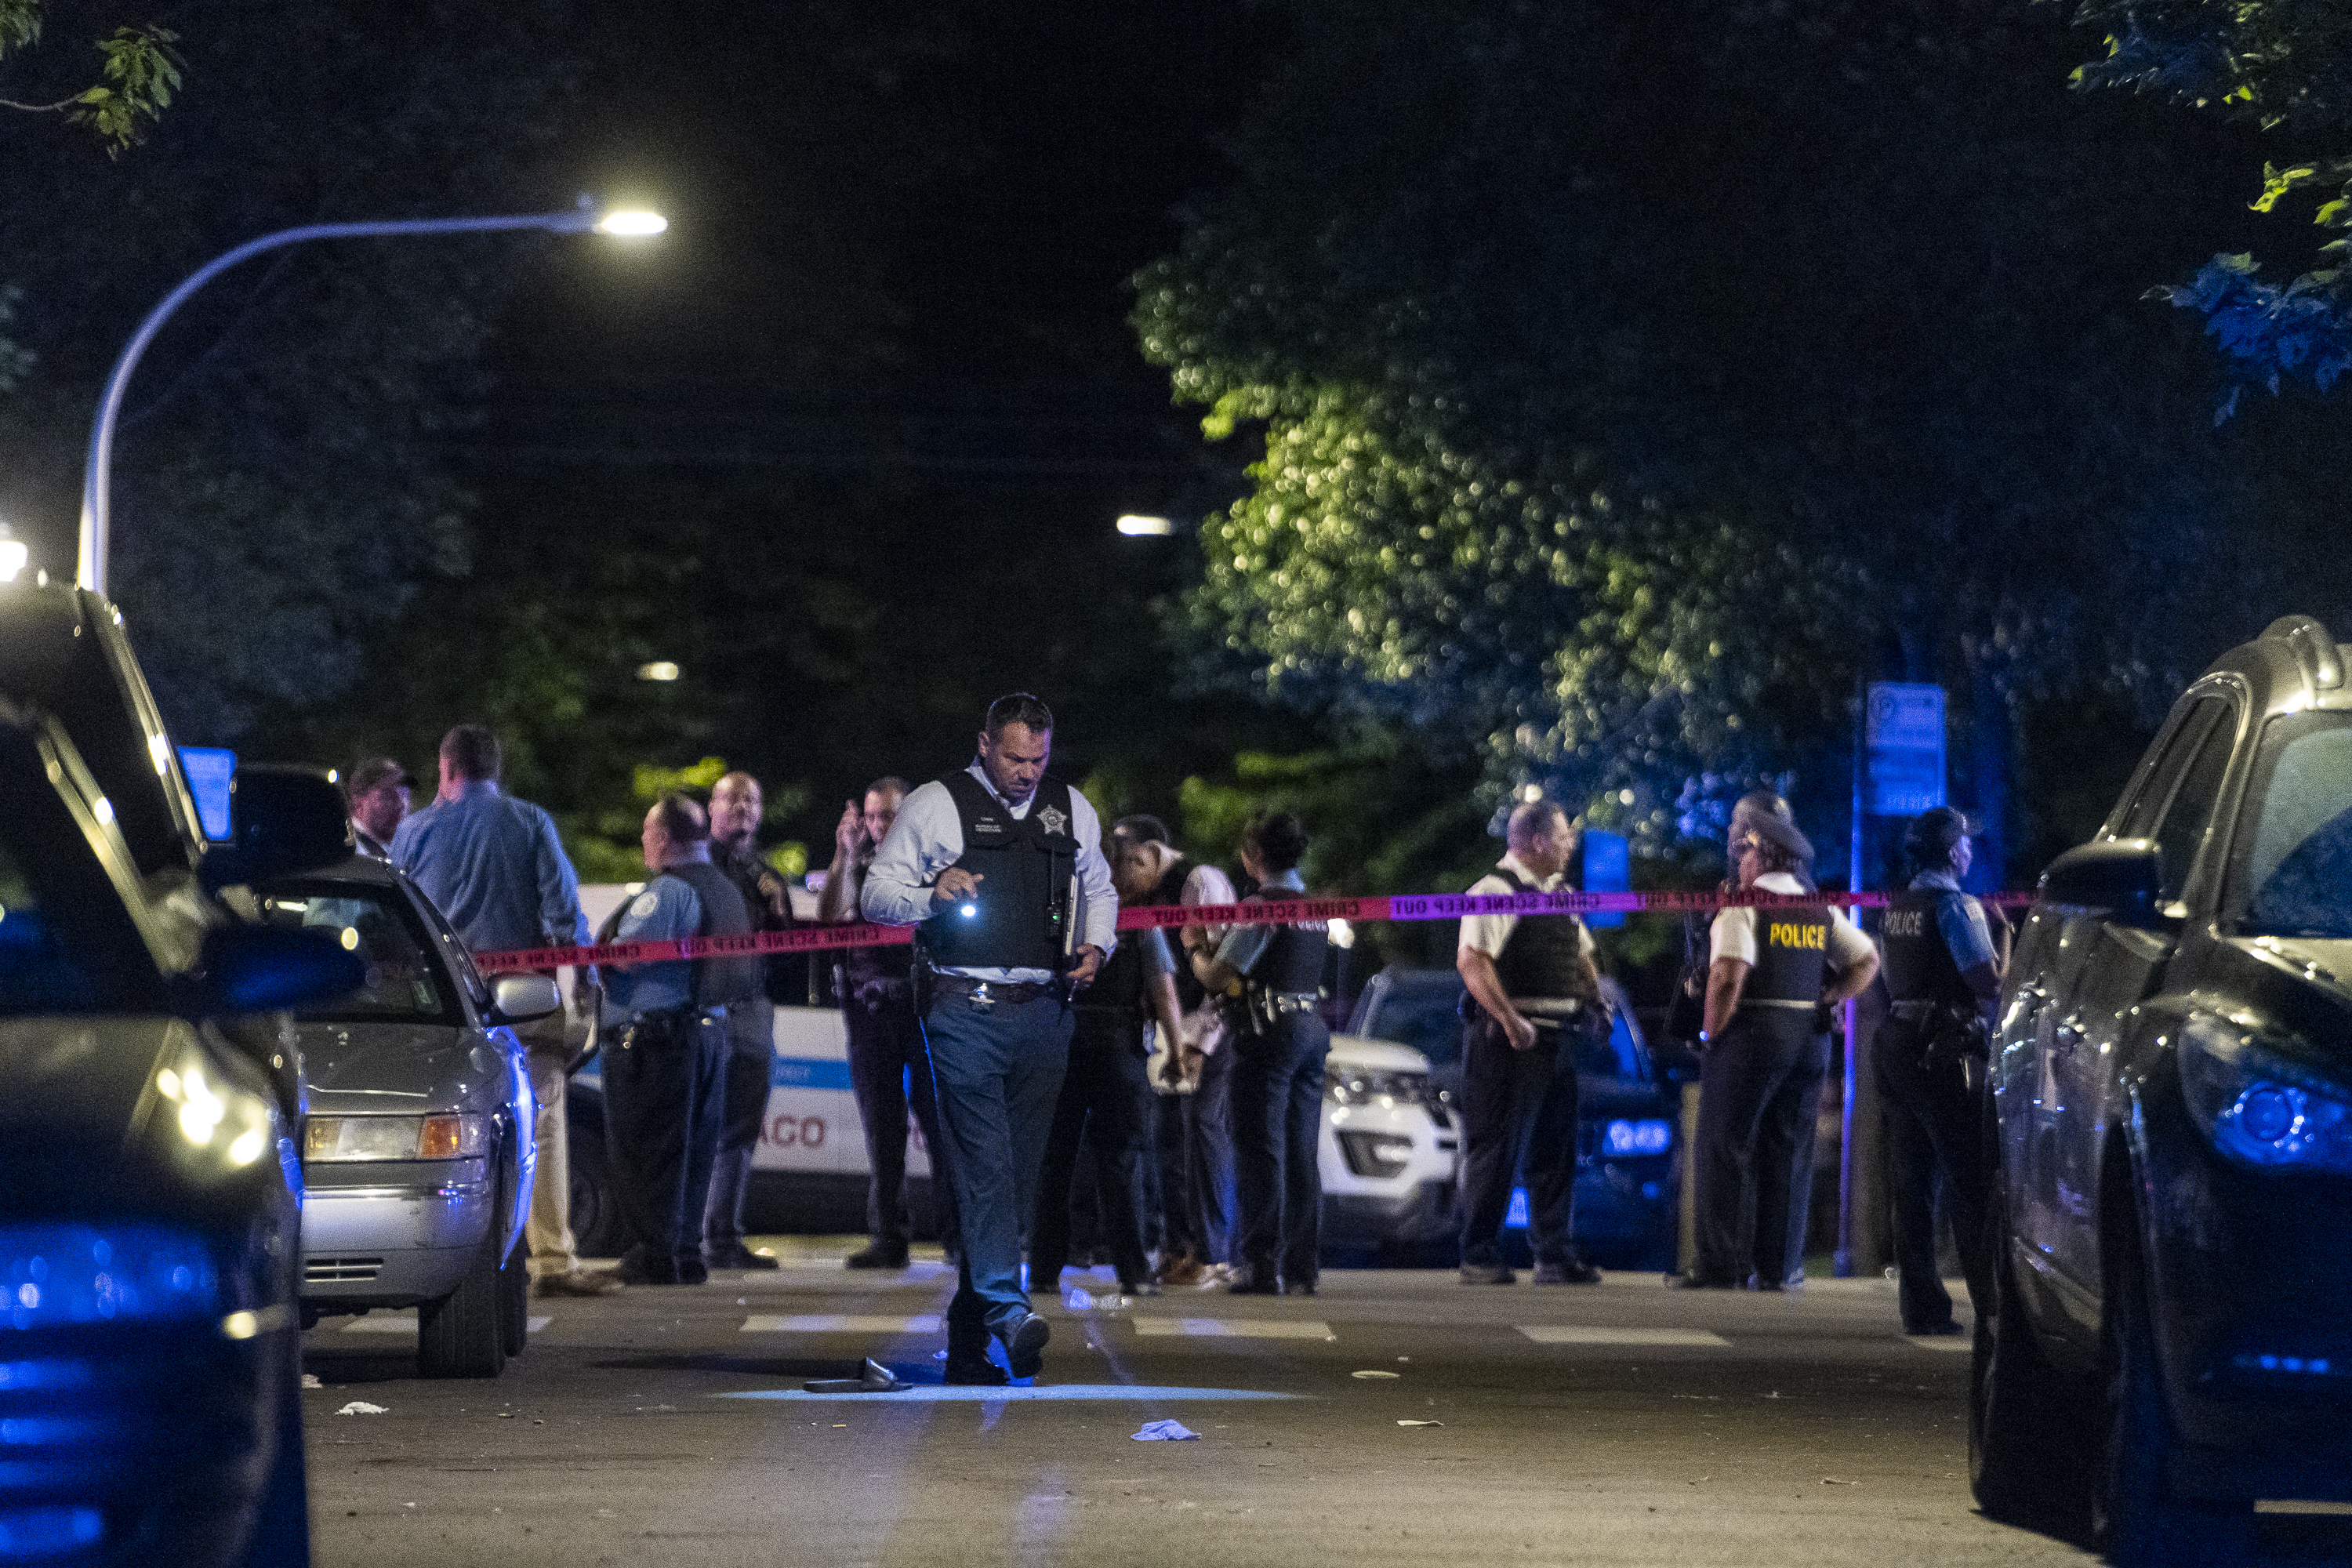 Plagued by violence, Chicago prepares for critical holiday weekend